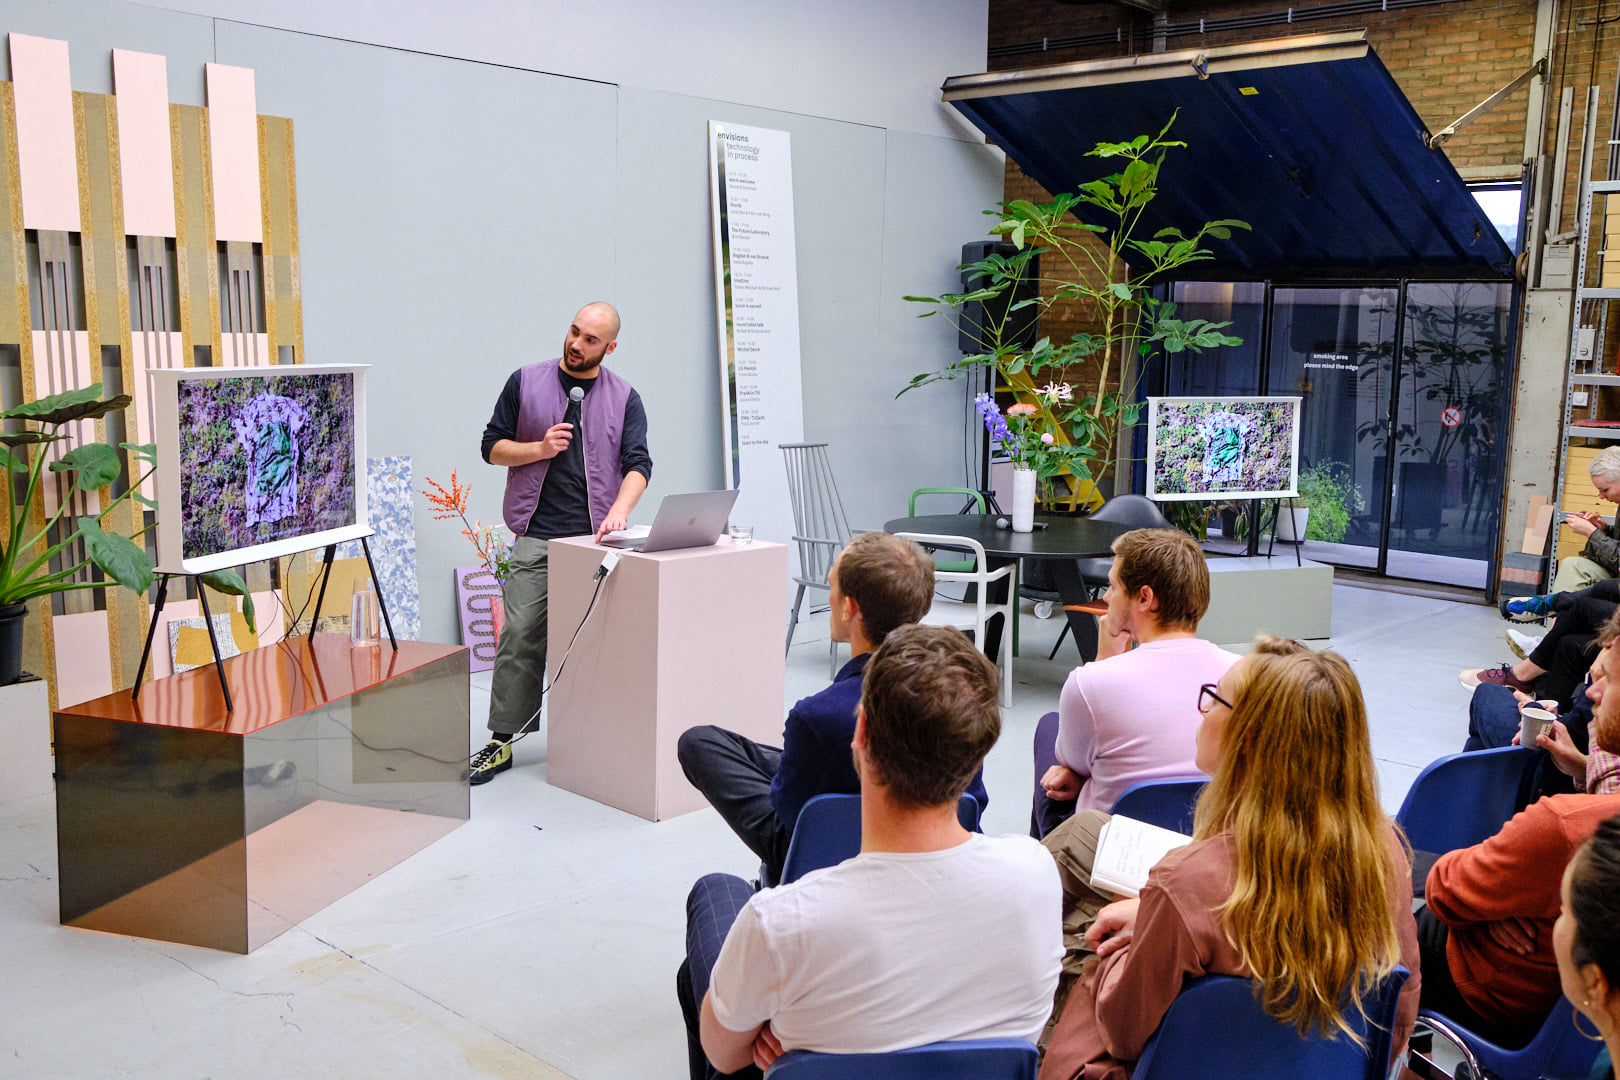 Envisions Symposium. Photography by Ronald Smits